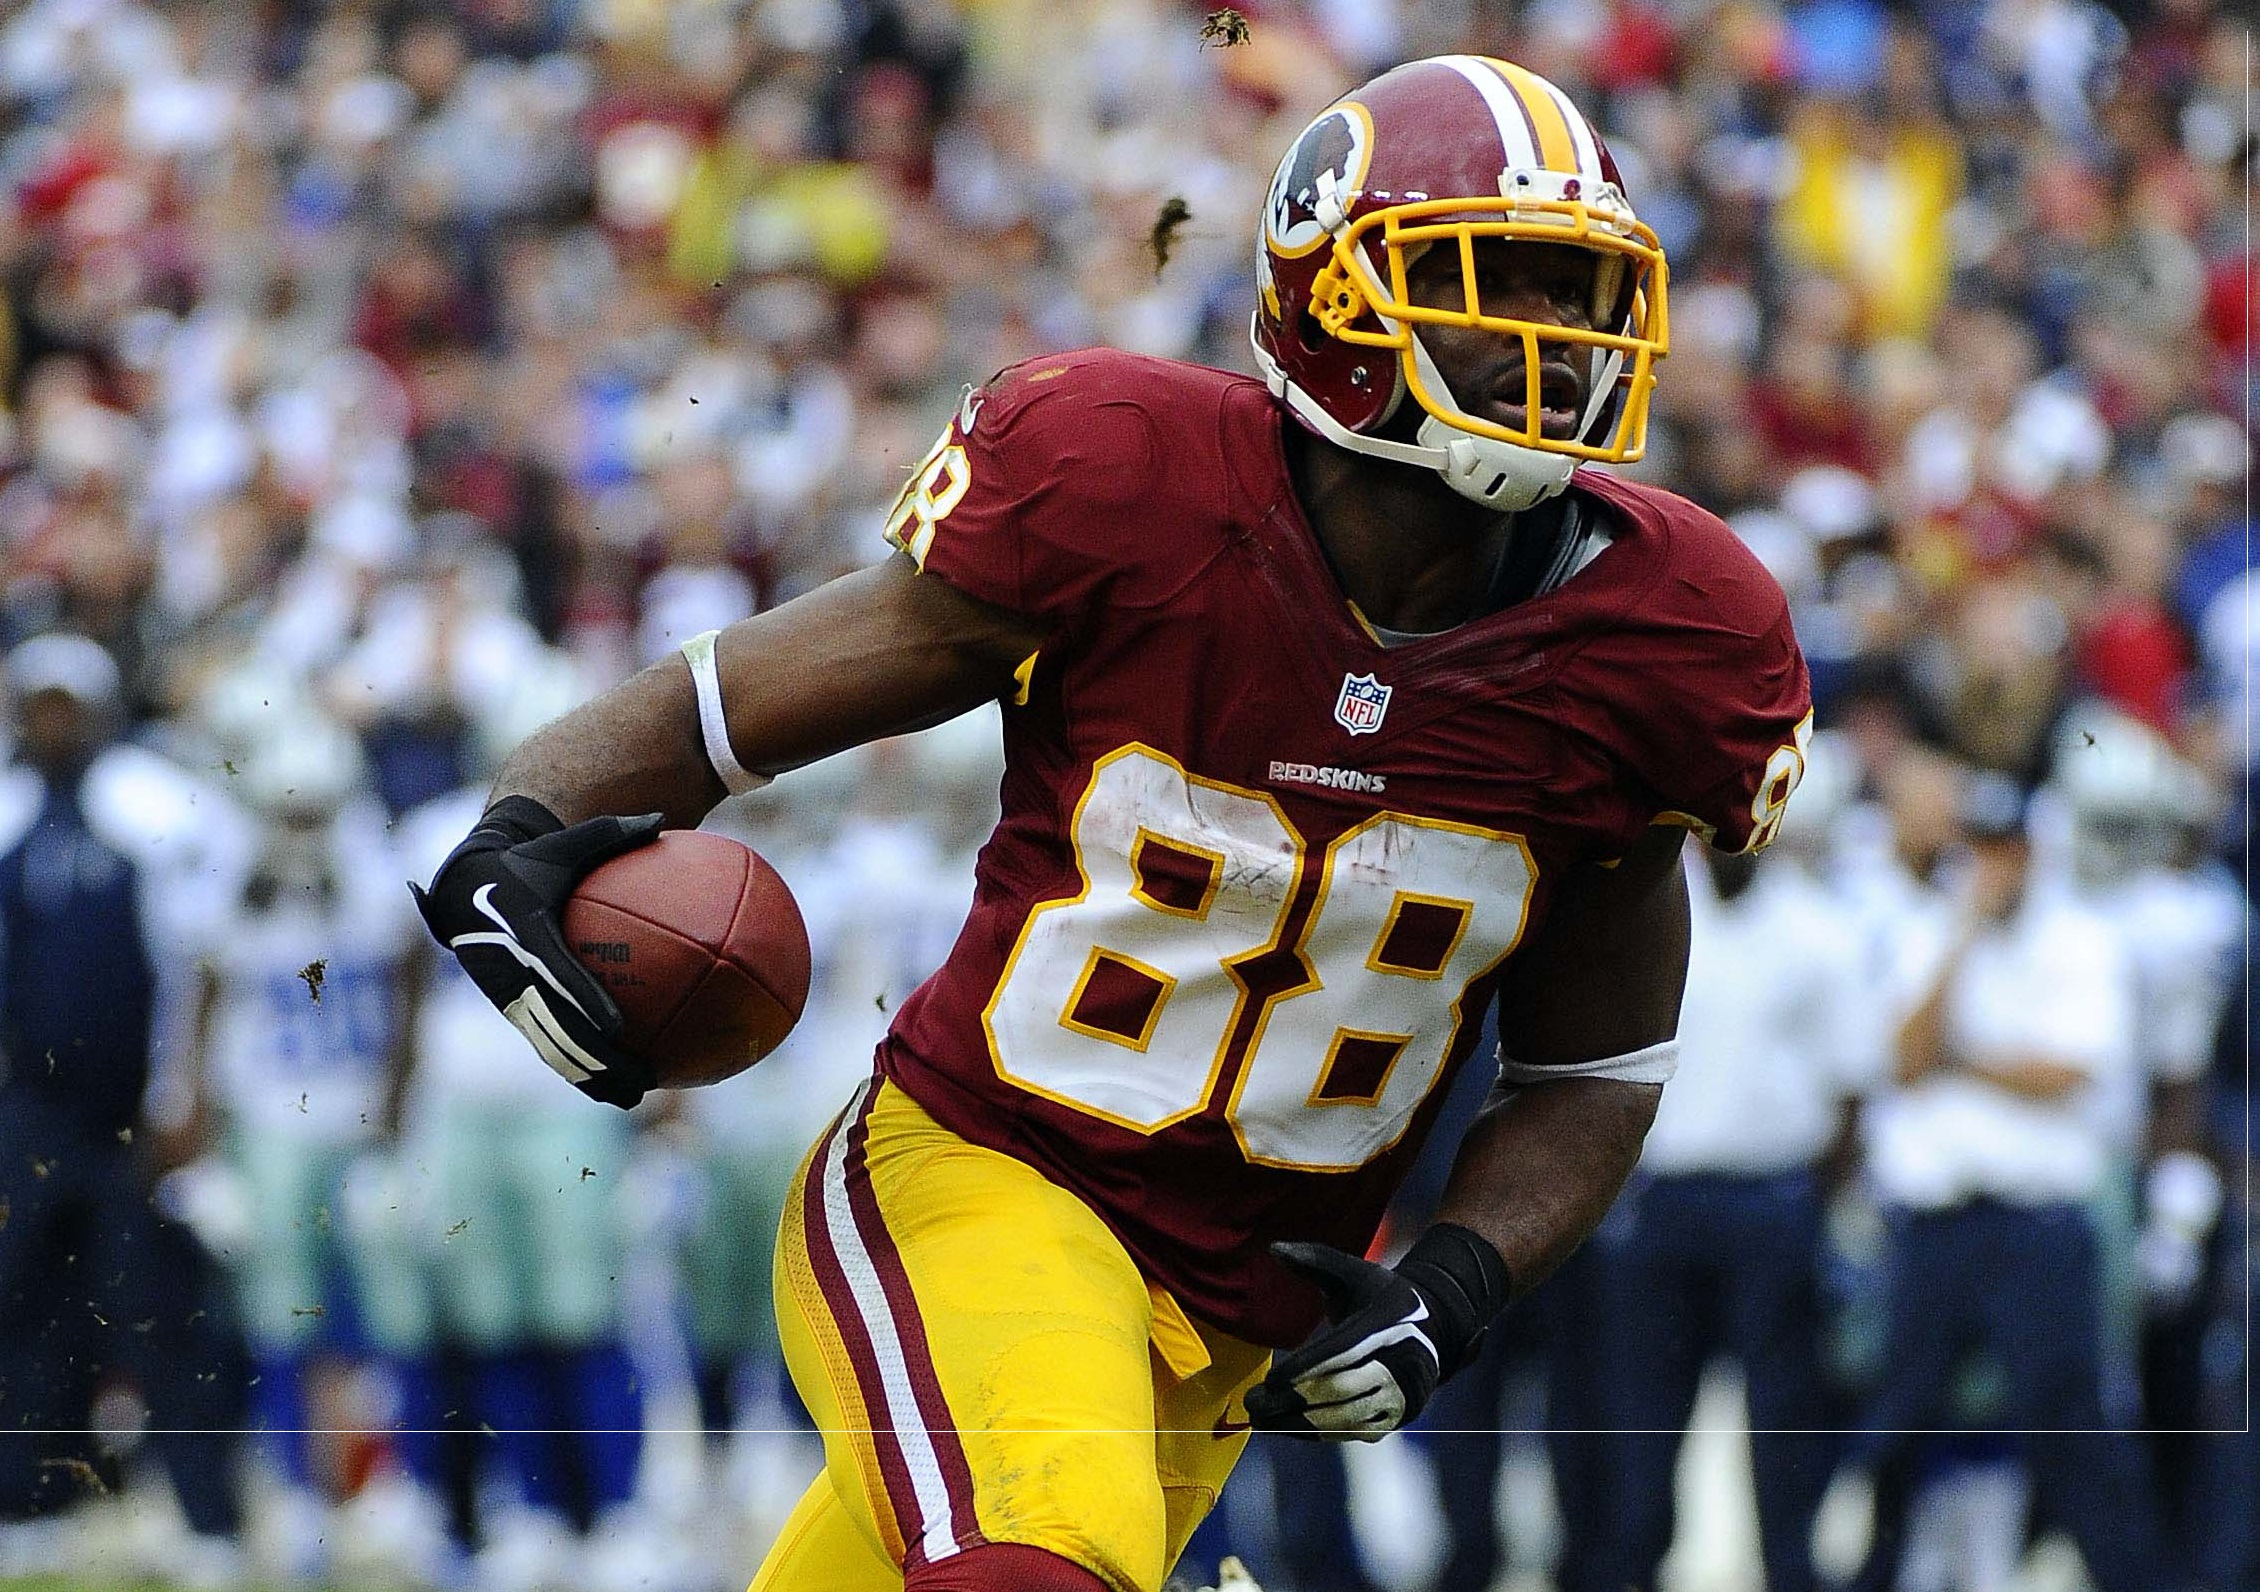 Top 10 Highest Paid 2013 Washington Redskins Players